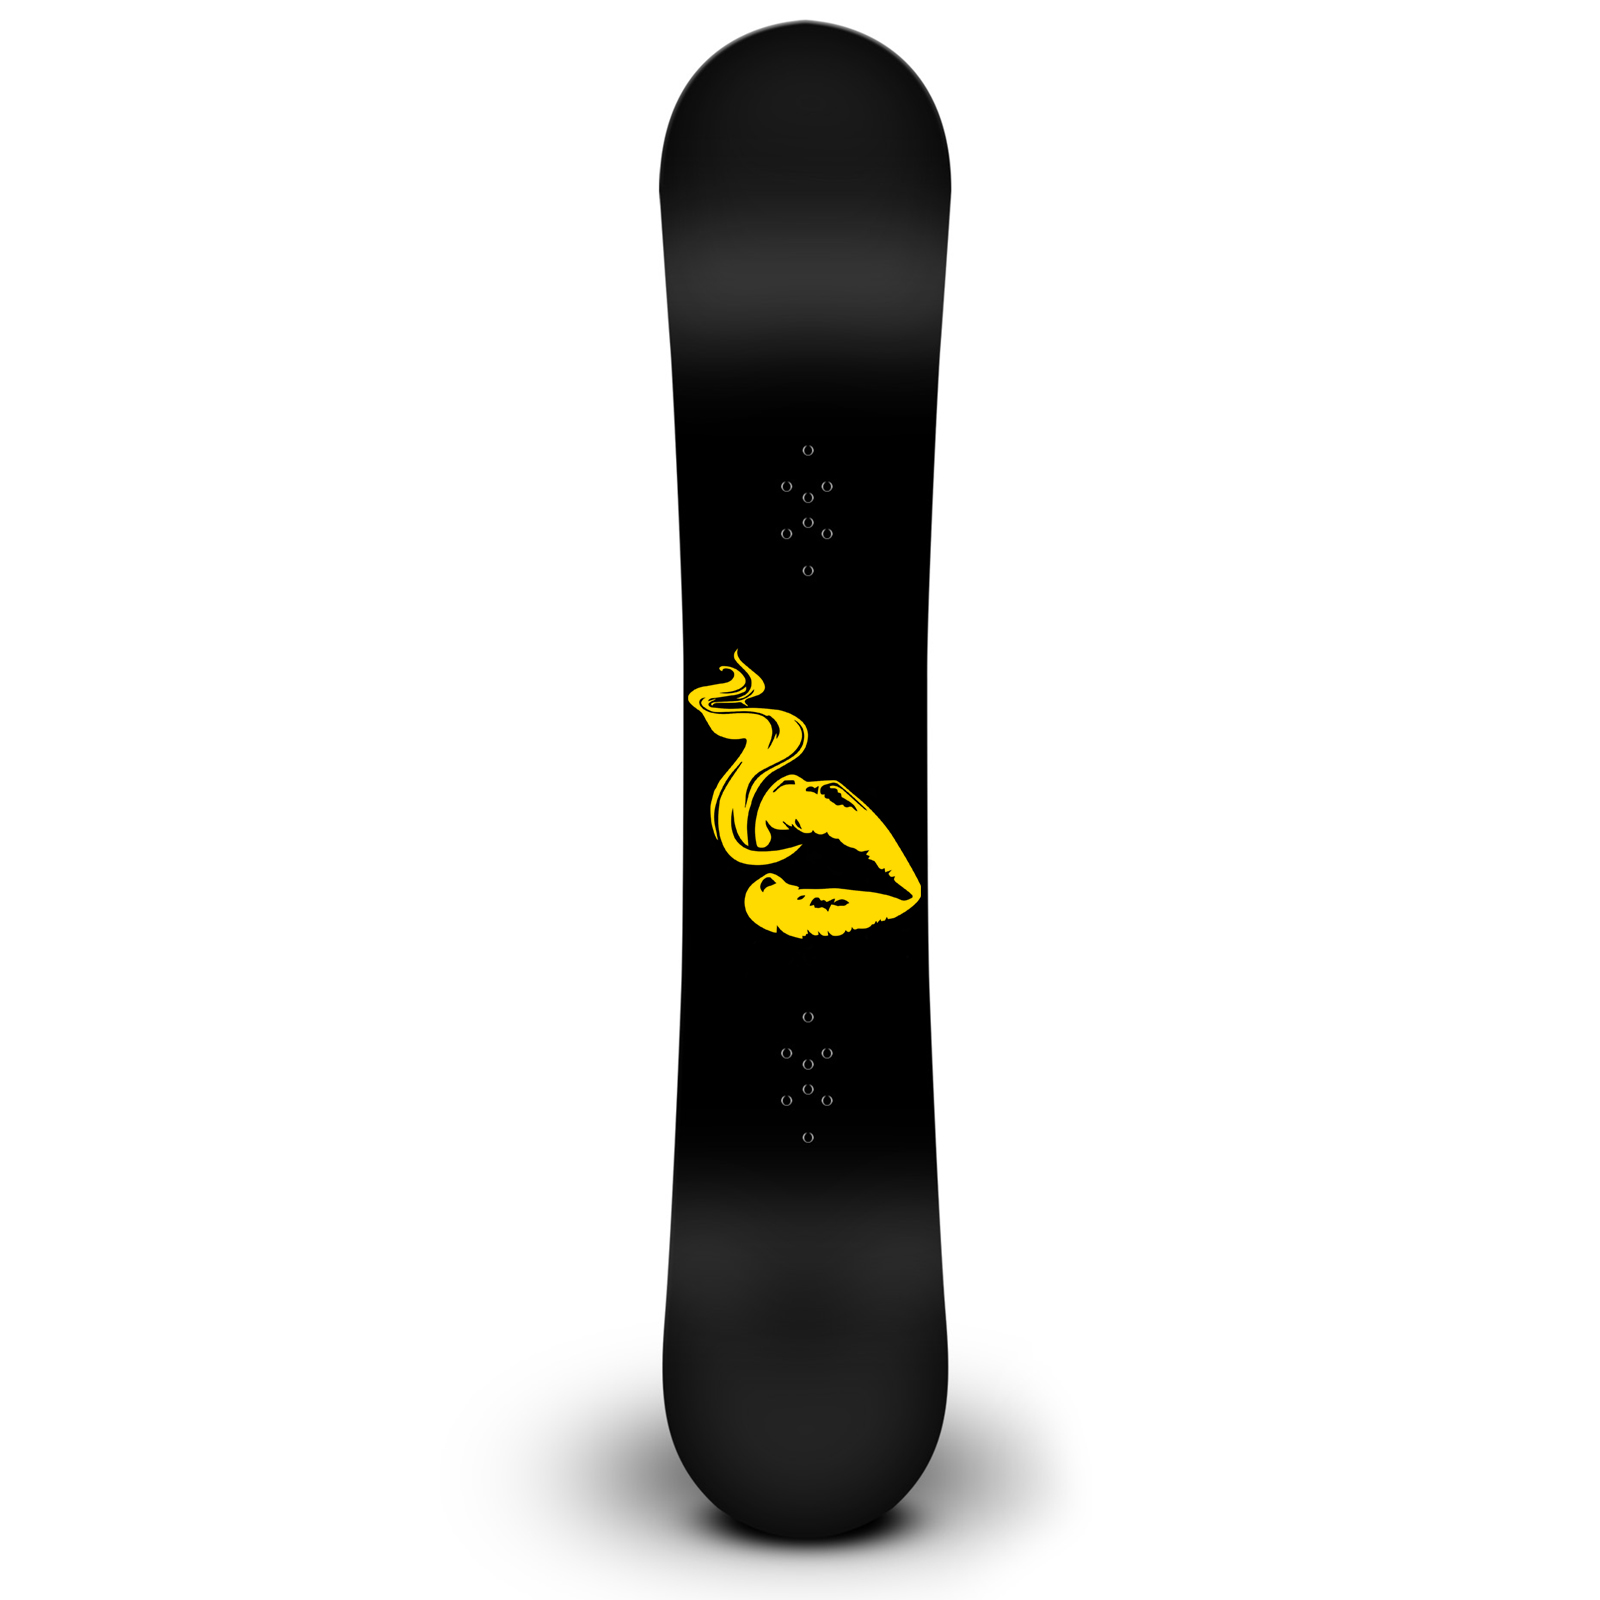 Lips Smoking Snowboard Sticker All Weather Vinyl Decal